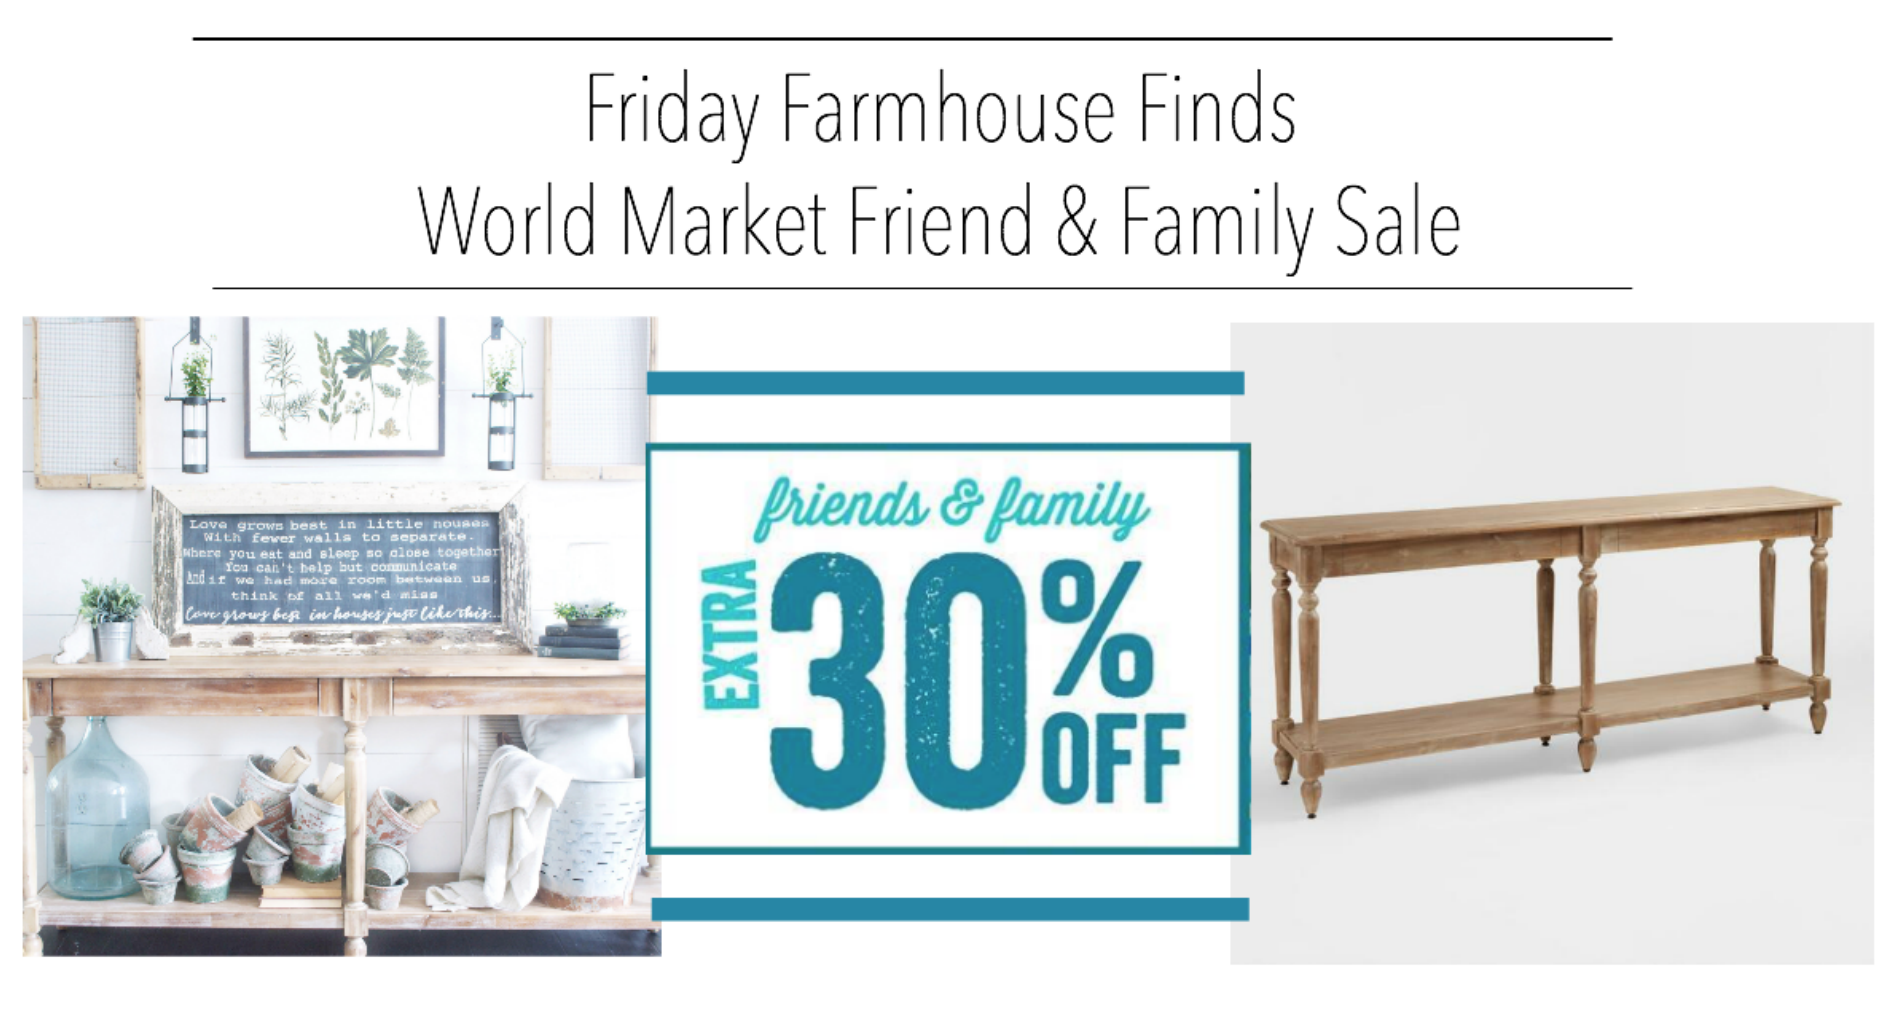 Friday Farmhouse Finds World Market Friends and Family Sale